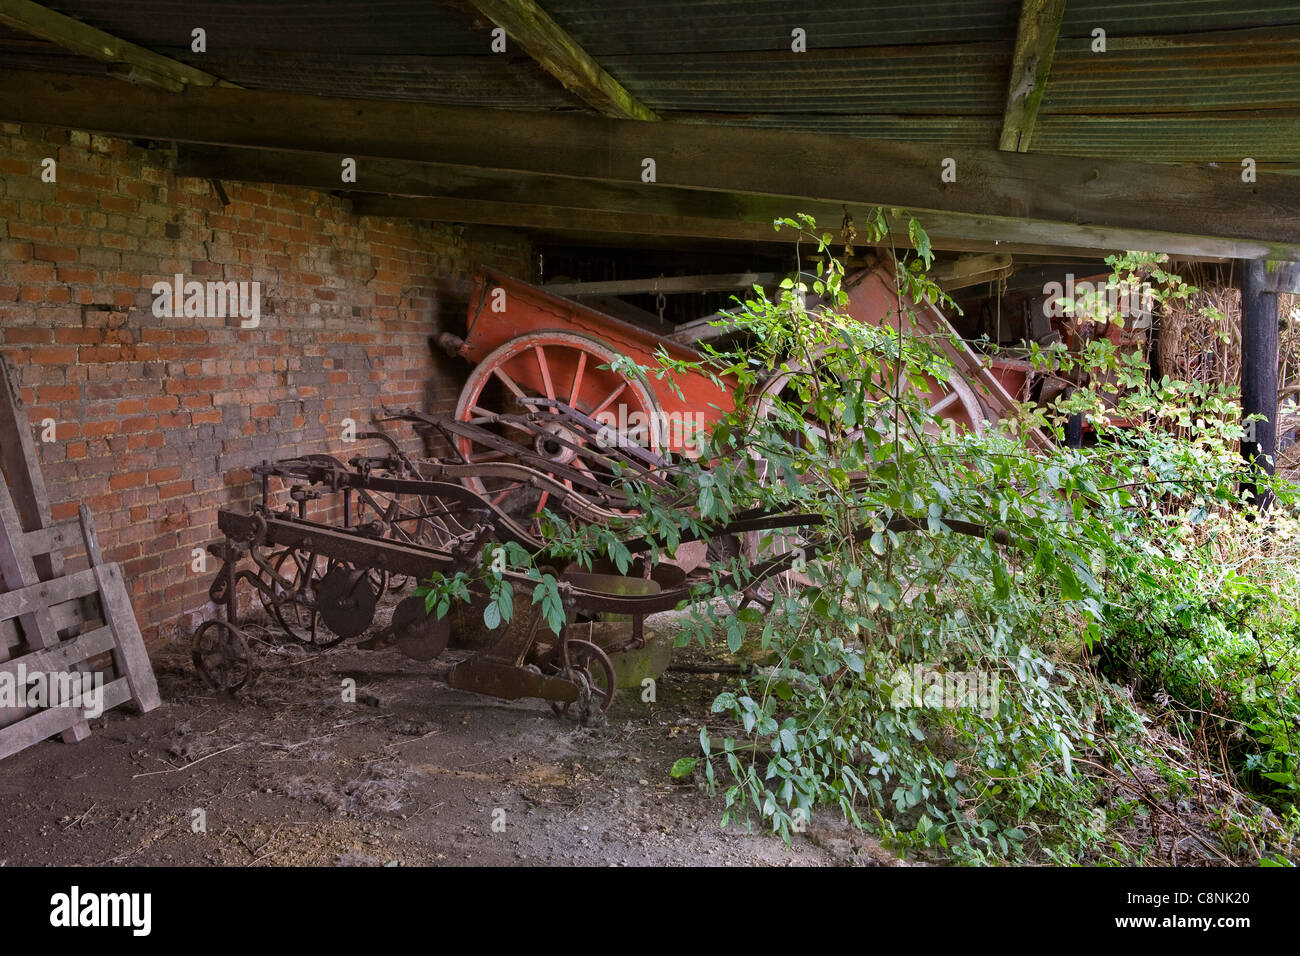 Horse drawn farm carts and ploughs - Stock Image